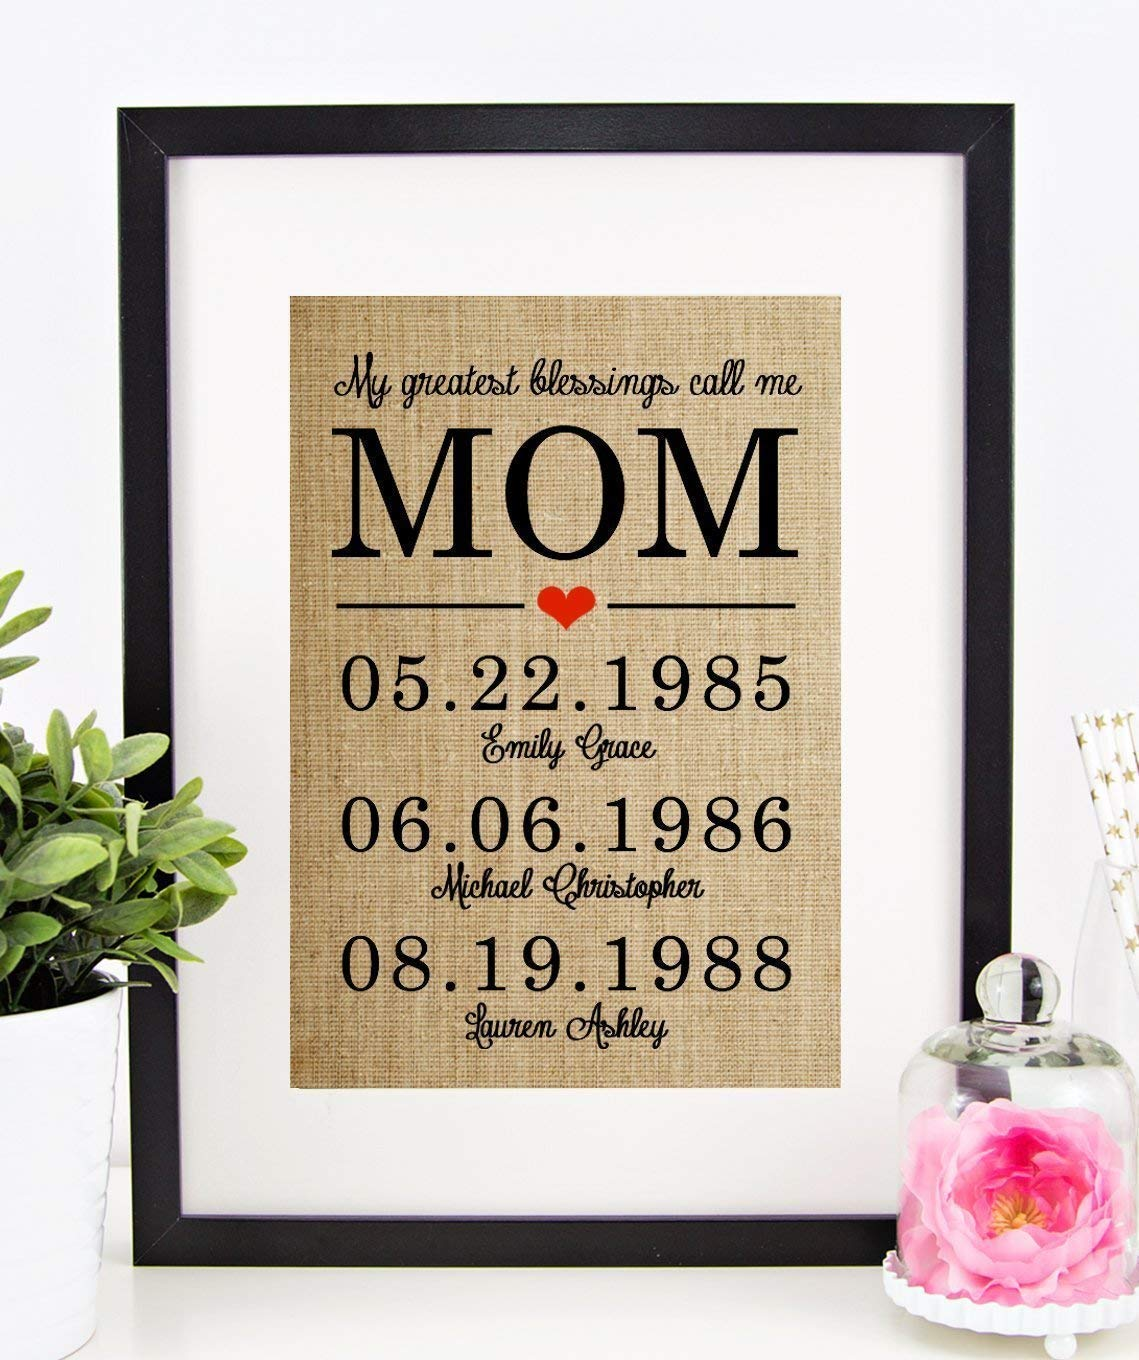 Mother Christmas Gifts.Personalized Christmas Gifts For Mom Mother Daughter Gifts Birthday Anniversary My Greatest Blessings Call Me Mom Burlap Print Mom Can Be